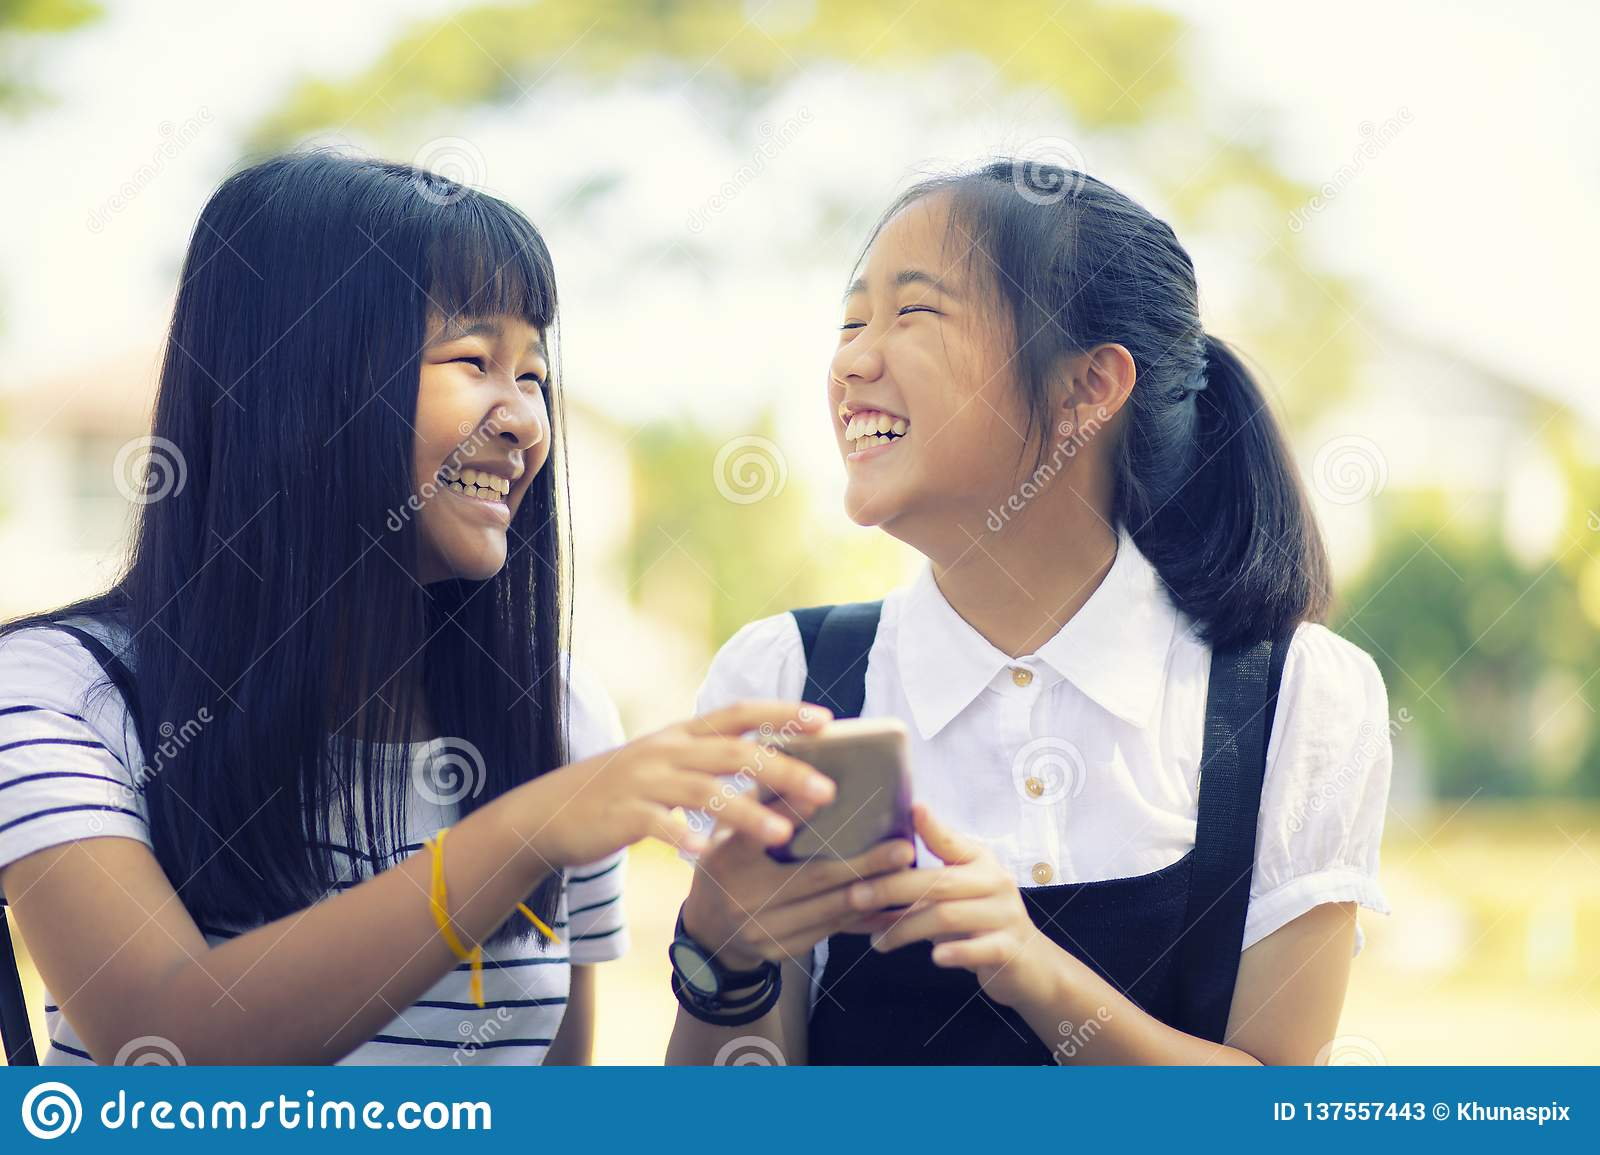 Happiness face of asian teenager holding smart phone in hand with toothy smiling face